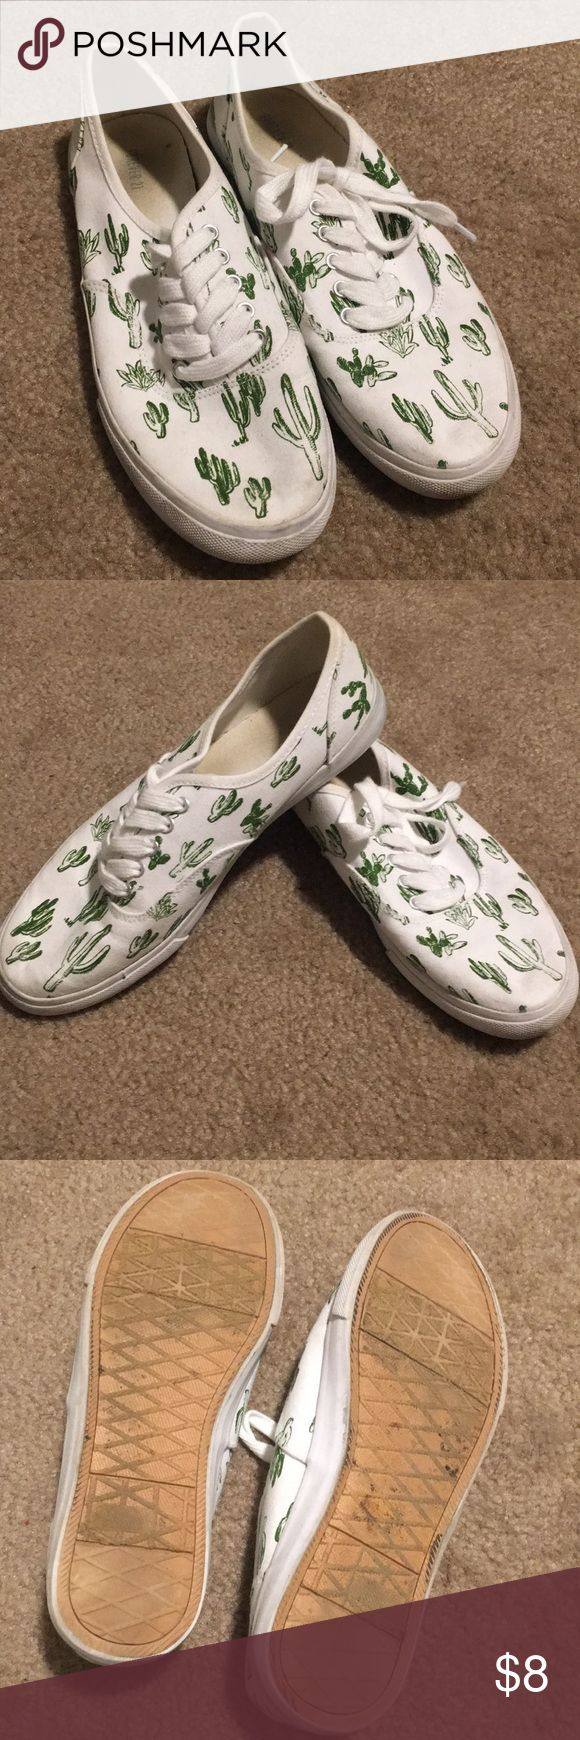 Cactus Print Sneakers Forever 21 worn but still super cute and clean! Forever 21 Shoes Sneakers